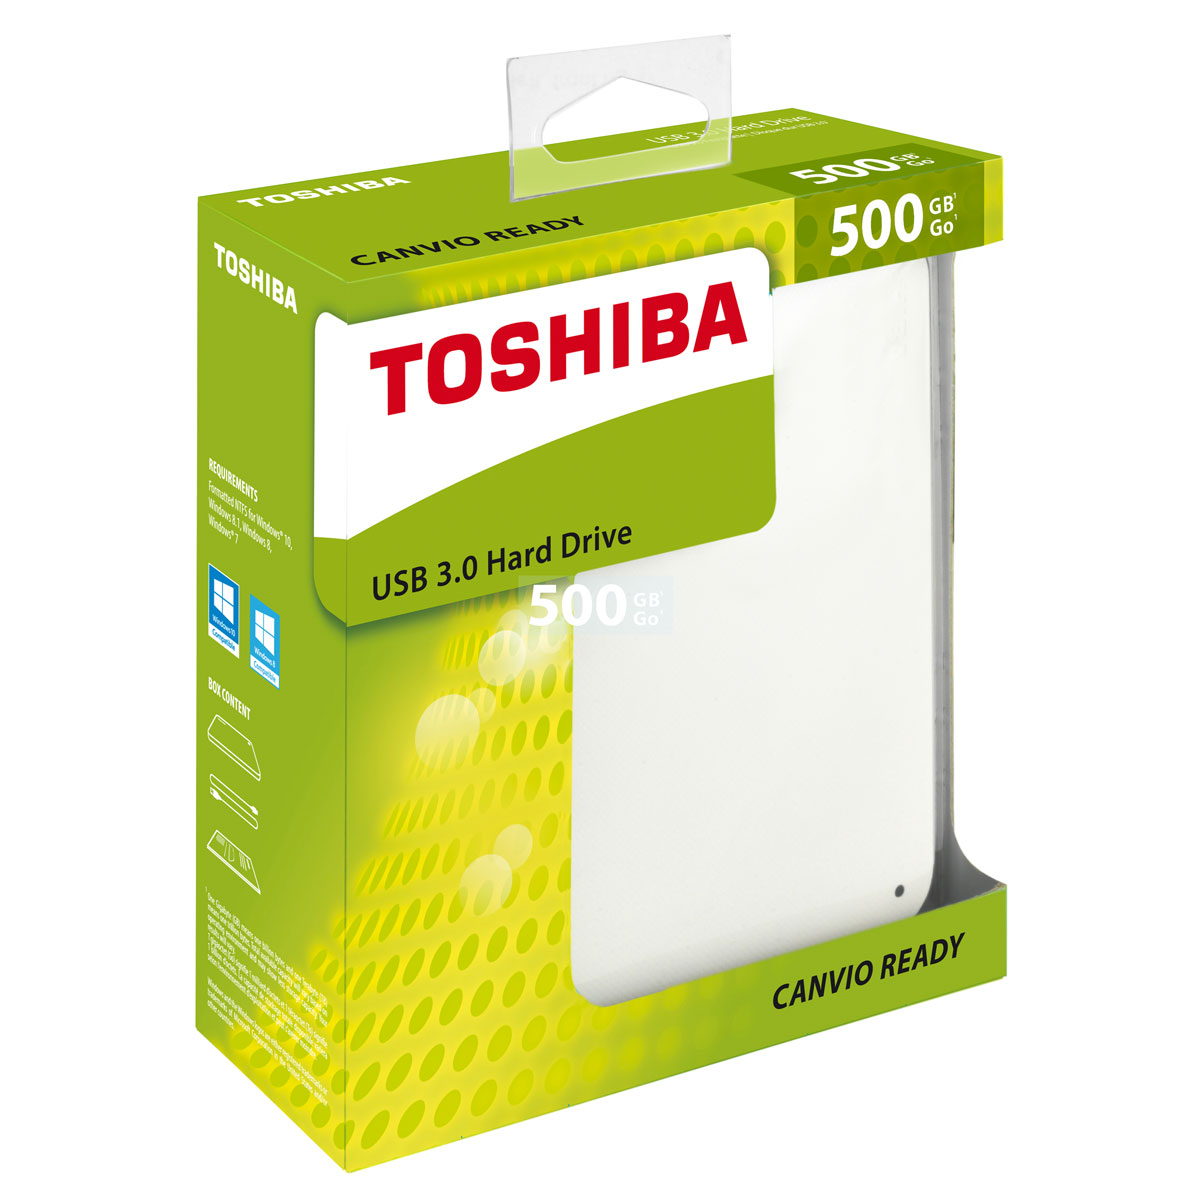 toshiba canvio ready 500 go blanc disque dur externe toshiba sur. Black Bedroom Furniture Sets. Home Design Ideas